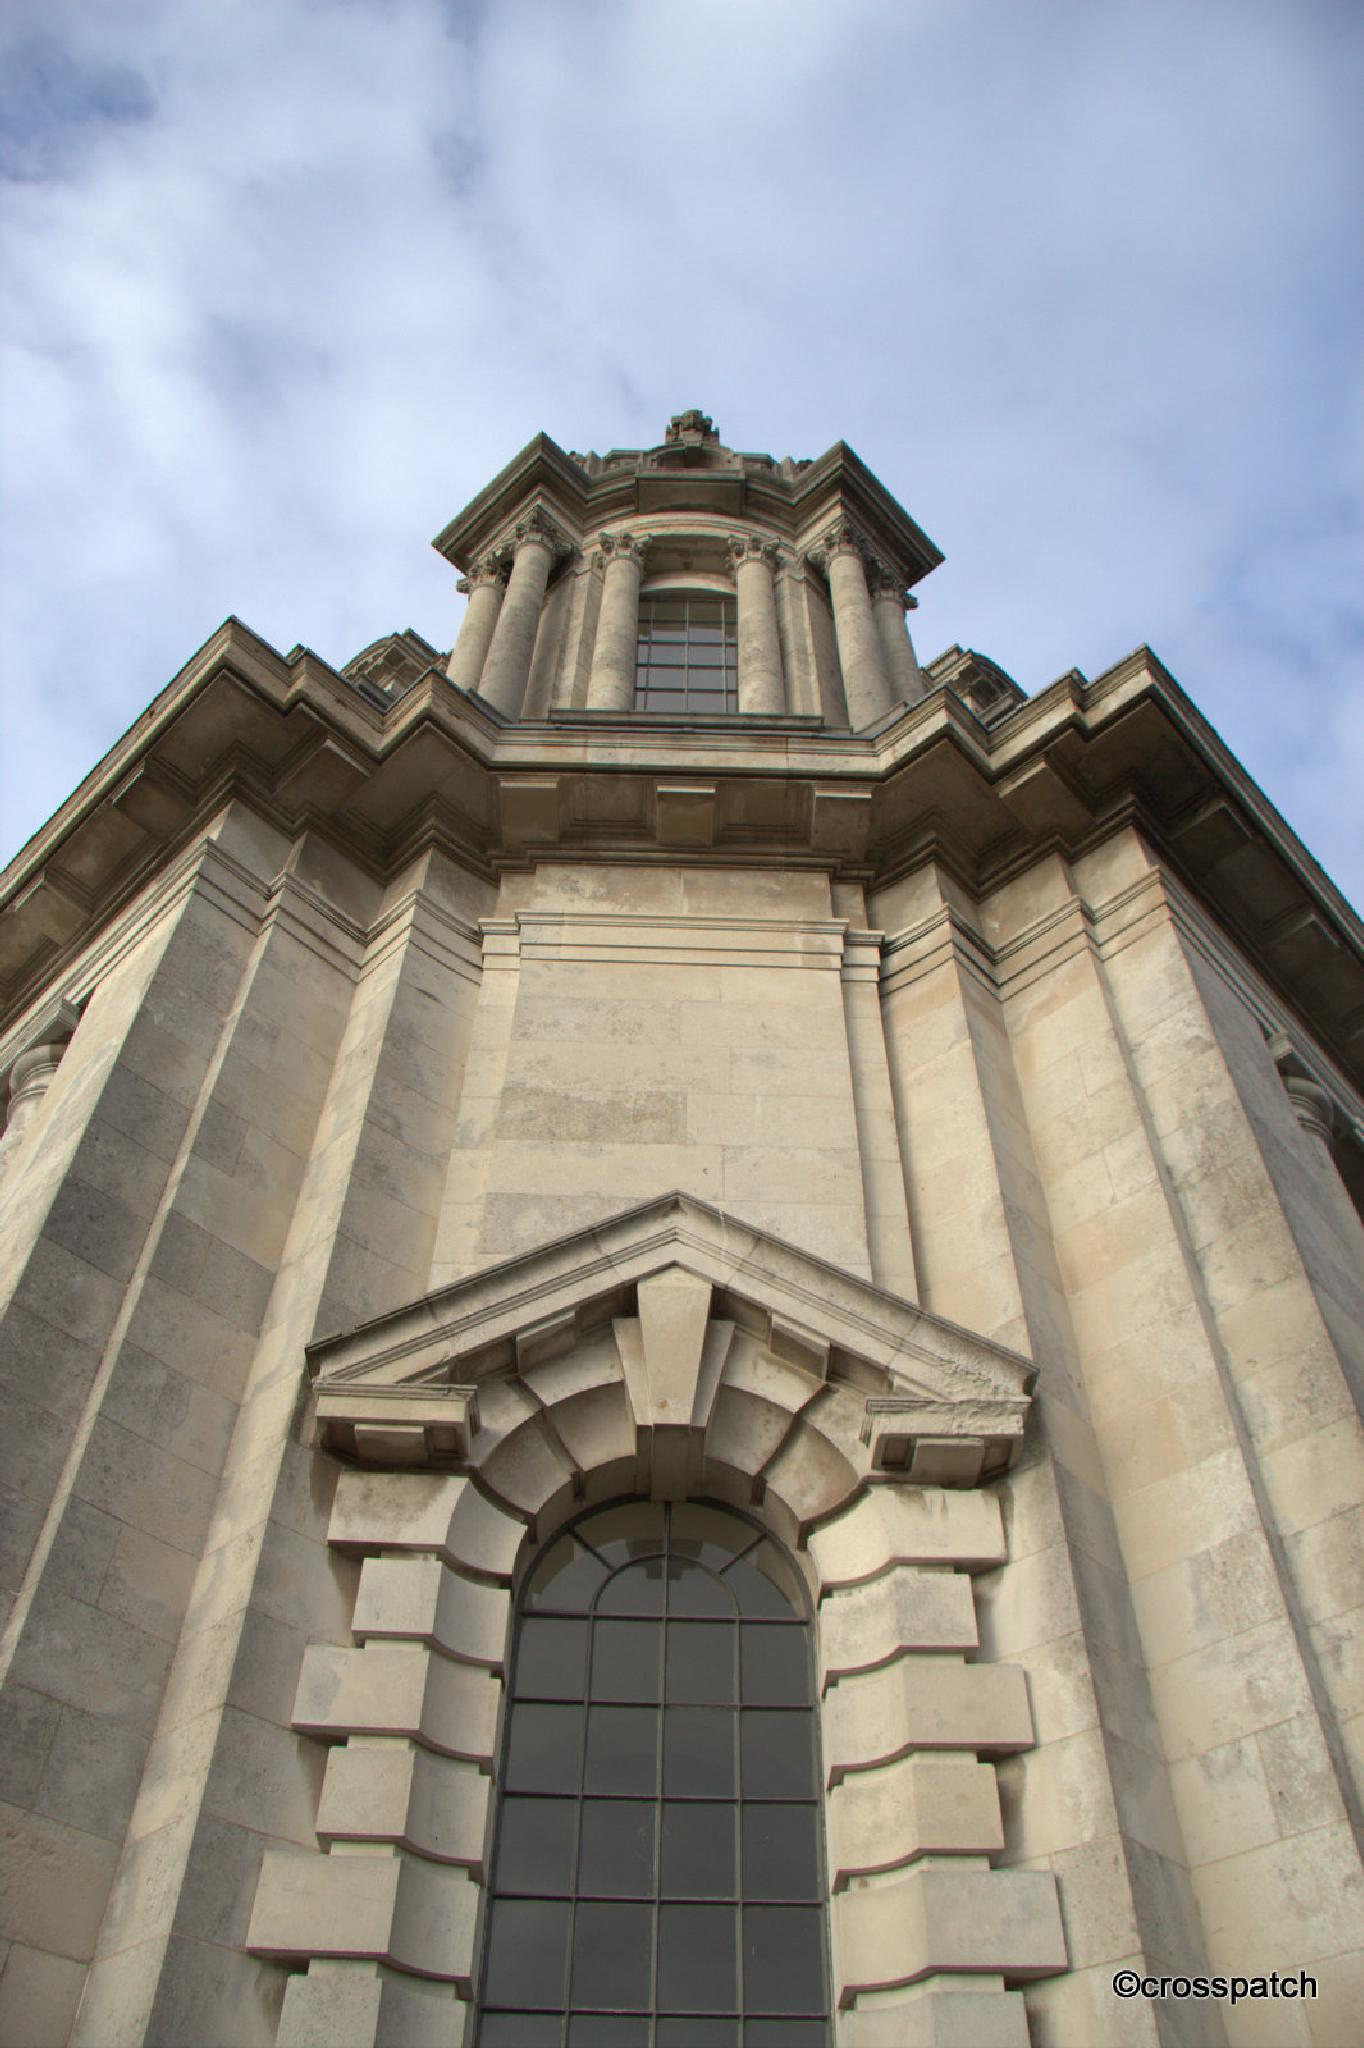 classical architecture  by lison Townley